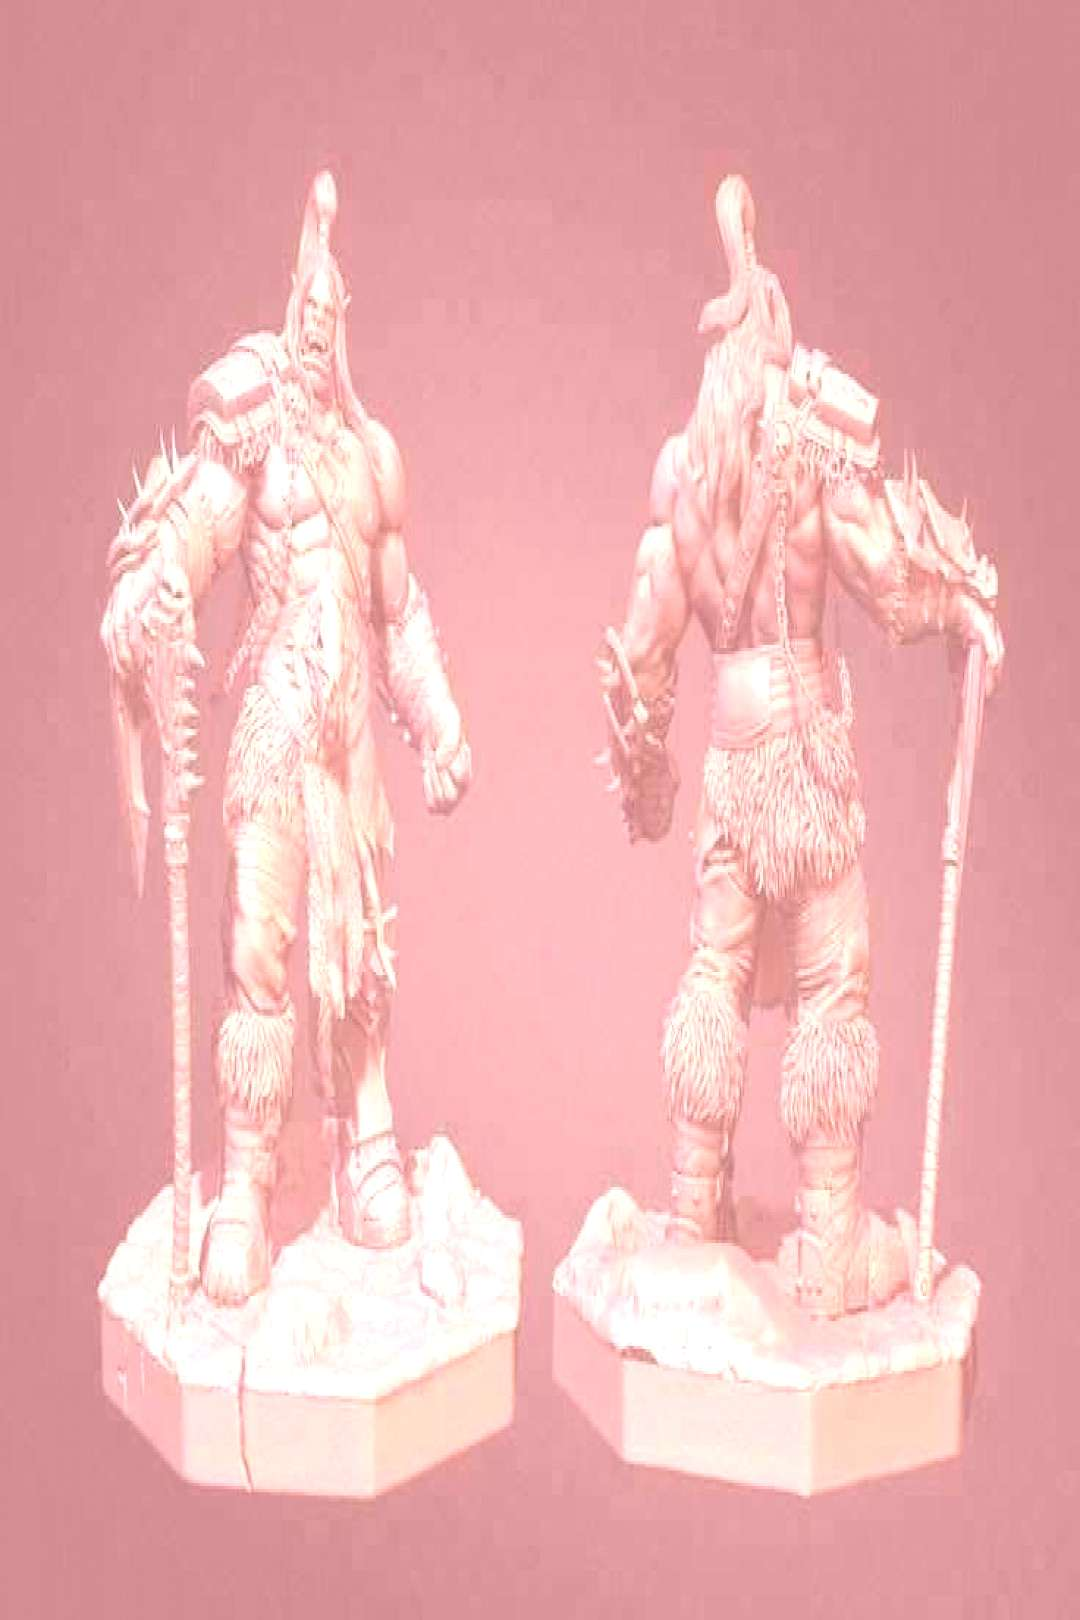 Zbrush Sculpture Character Design - -You can find Zbrus...